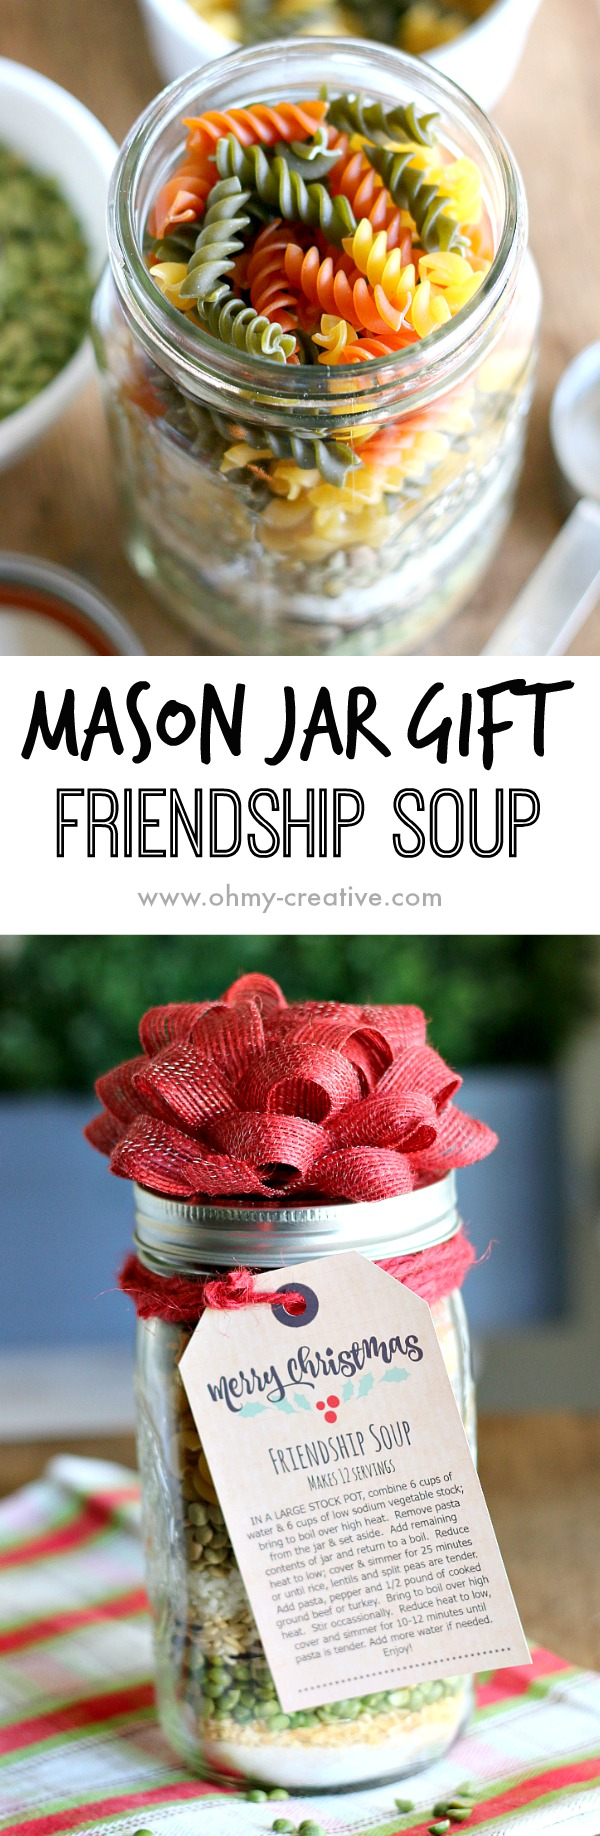 Edible gifts create the perfect personal touch for gift giving during the holiday season. This Soup in a Jar Gift makes a great gift for friends, neighbors and co-workers! Its so easy to make soup in a jar recipes - a real time saver at the holidays. This mason jar recipe makes a tasty Christmas soup! | OHMY-CREATIVE.COM